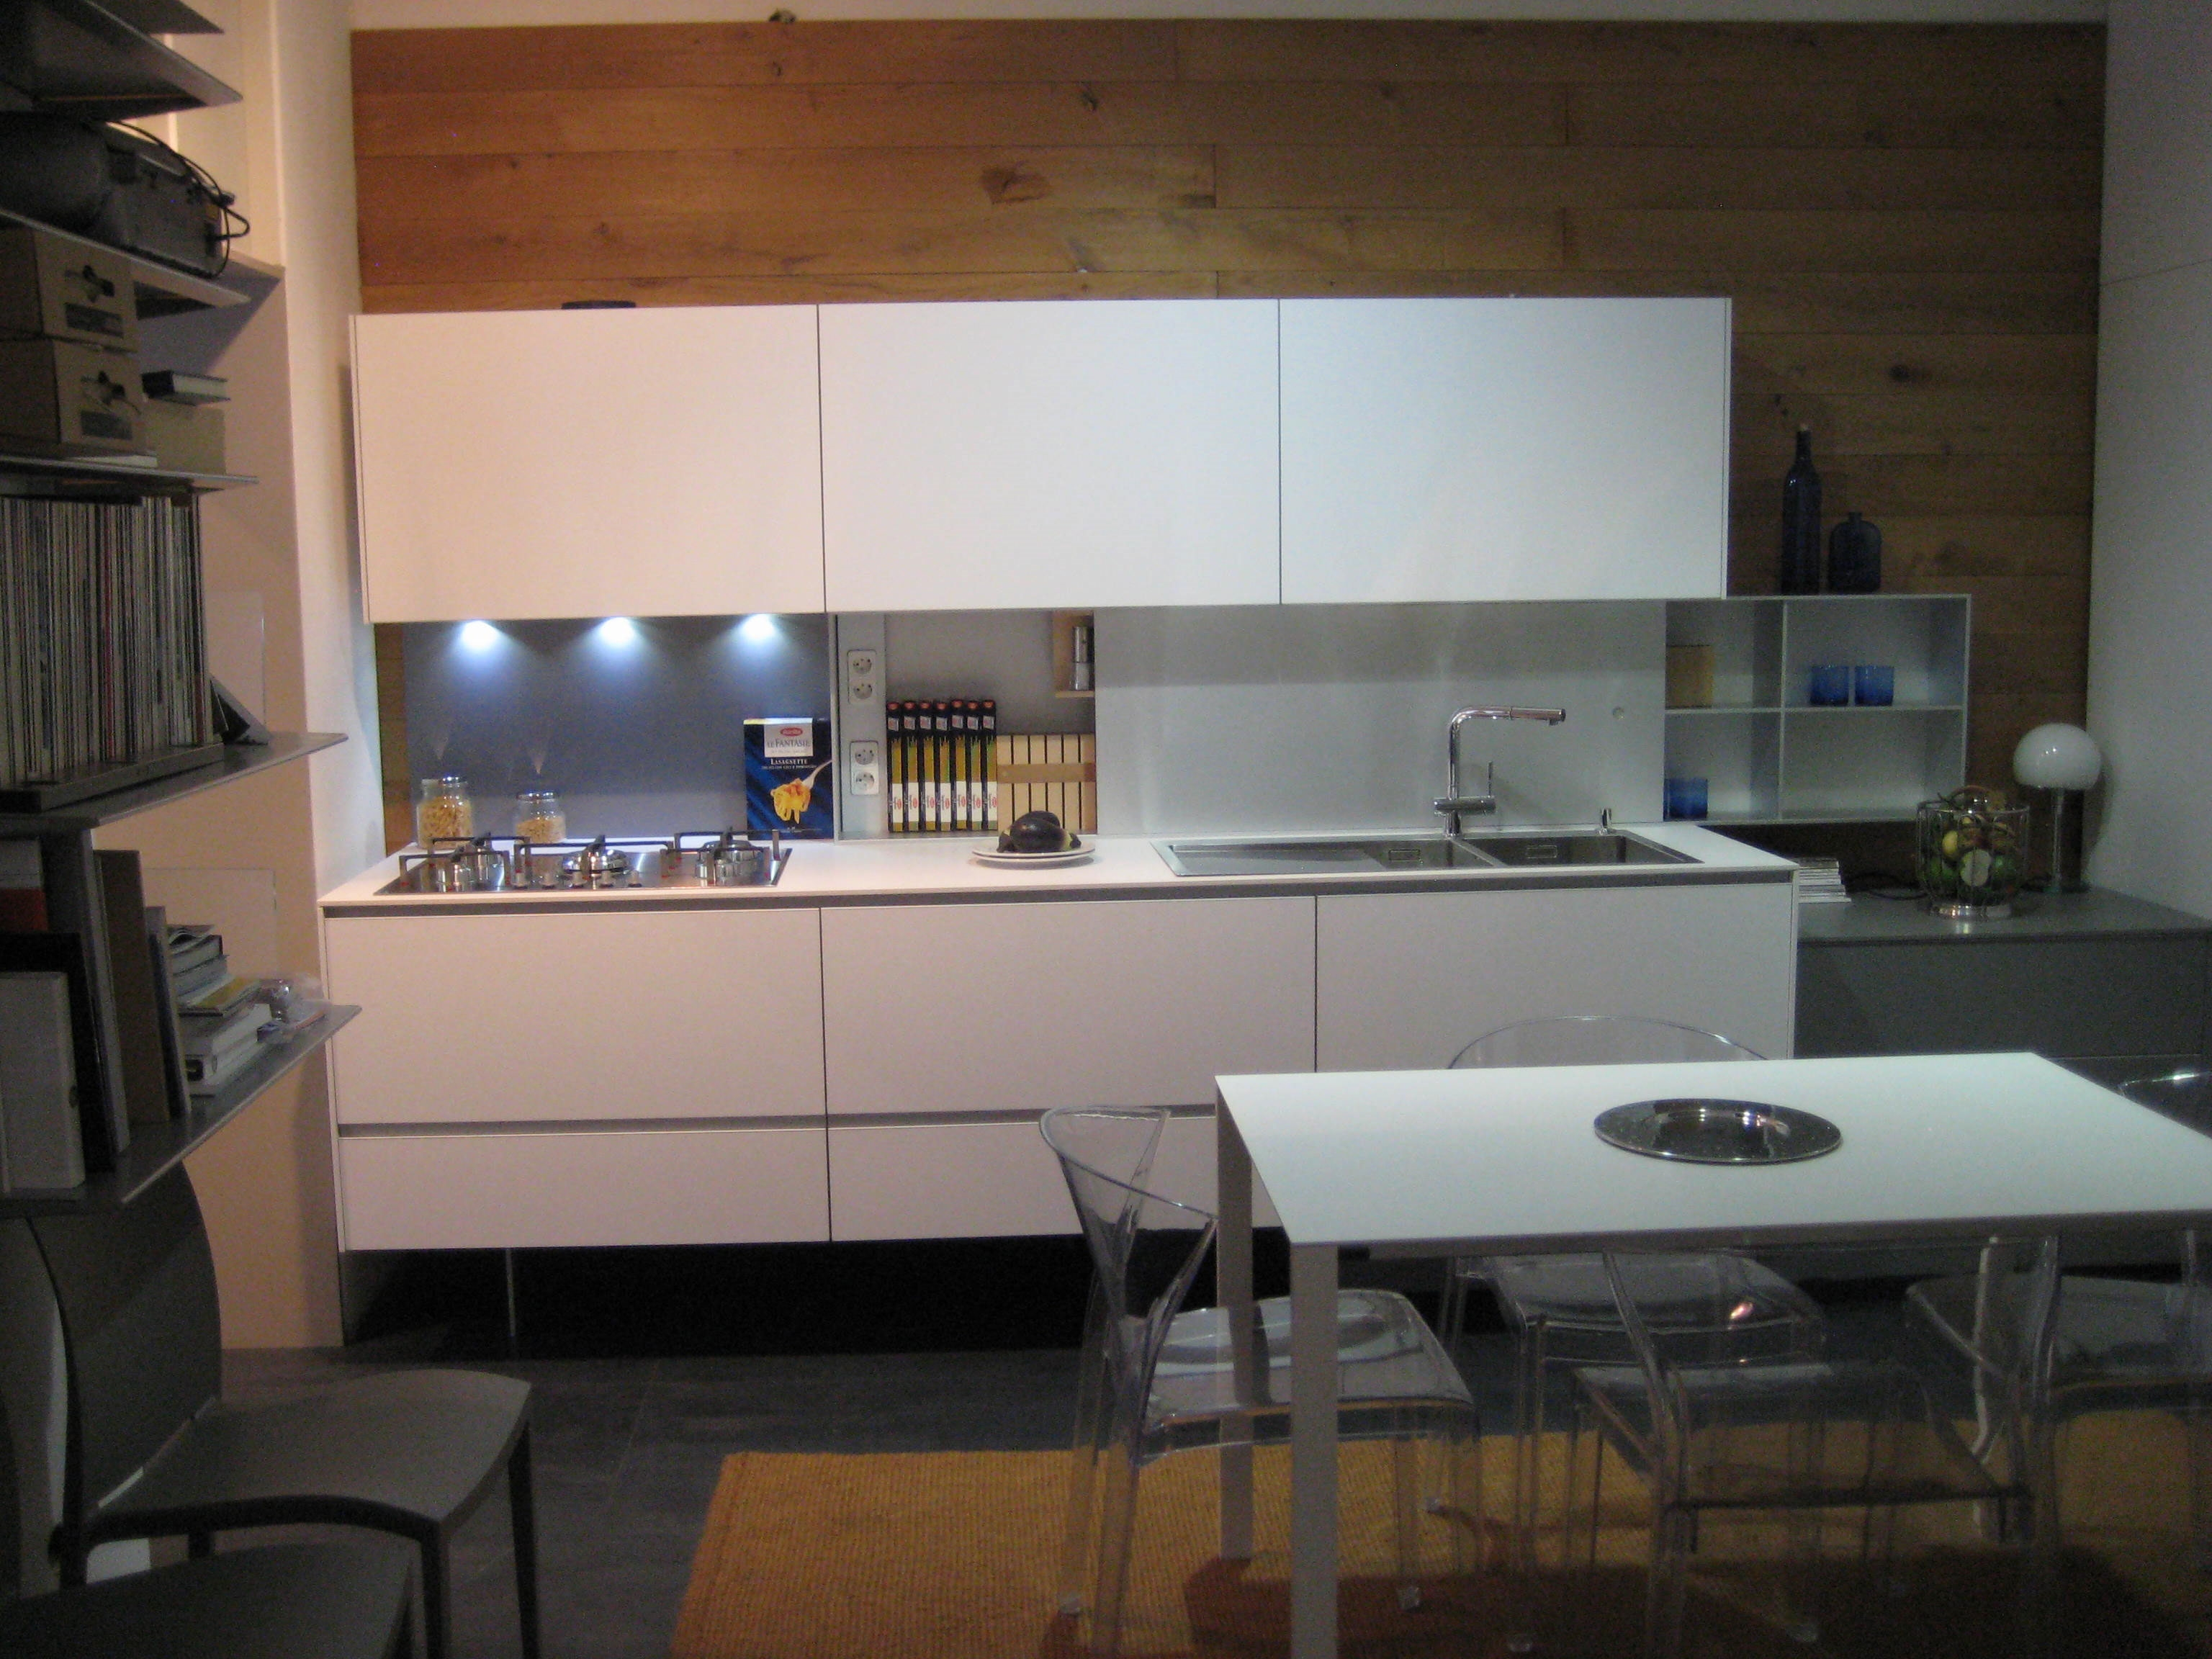 Cucine Americane Anni 50. Trendy Some Elements Available For The ...